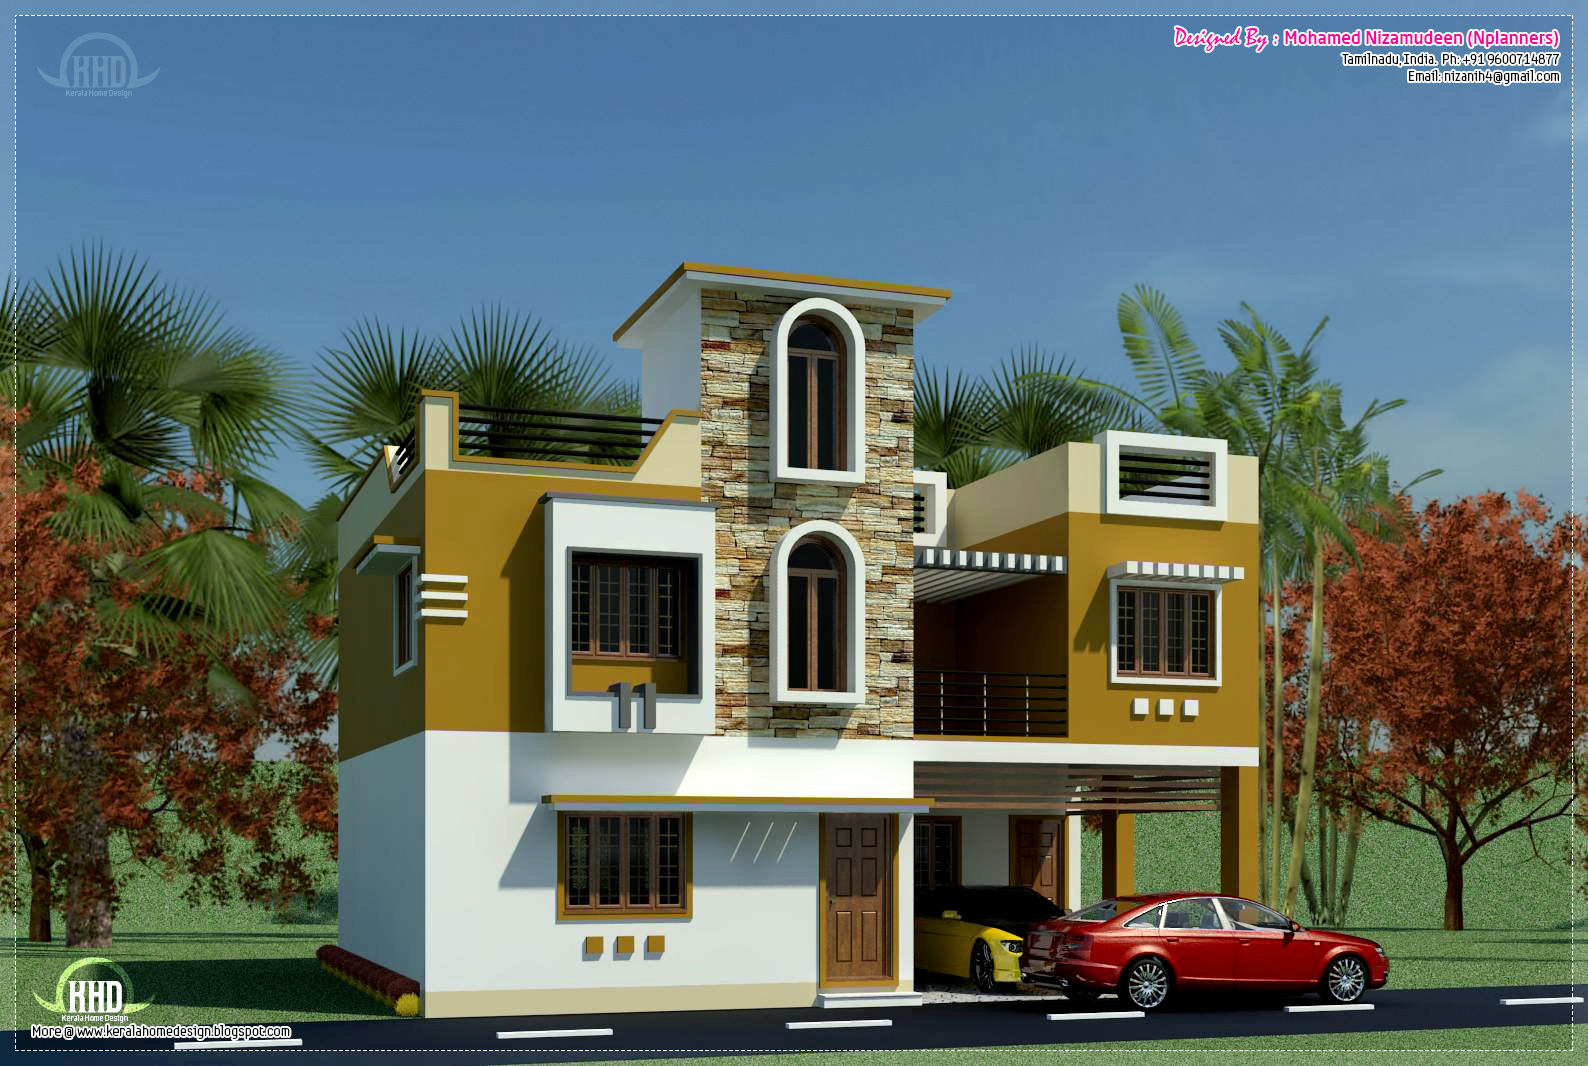 Siddu buzz online kerala home design for Home front design in indian style